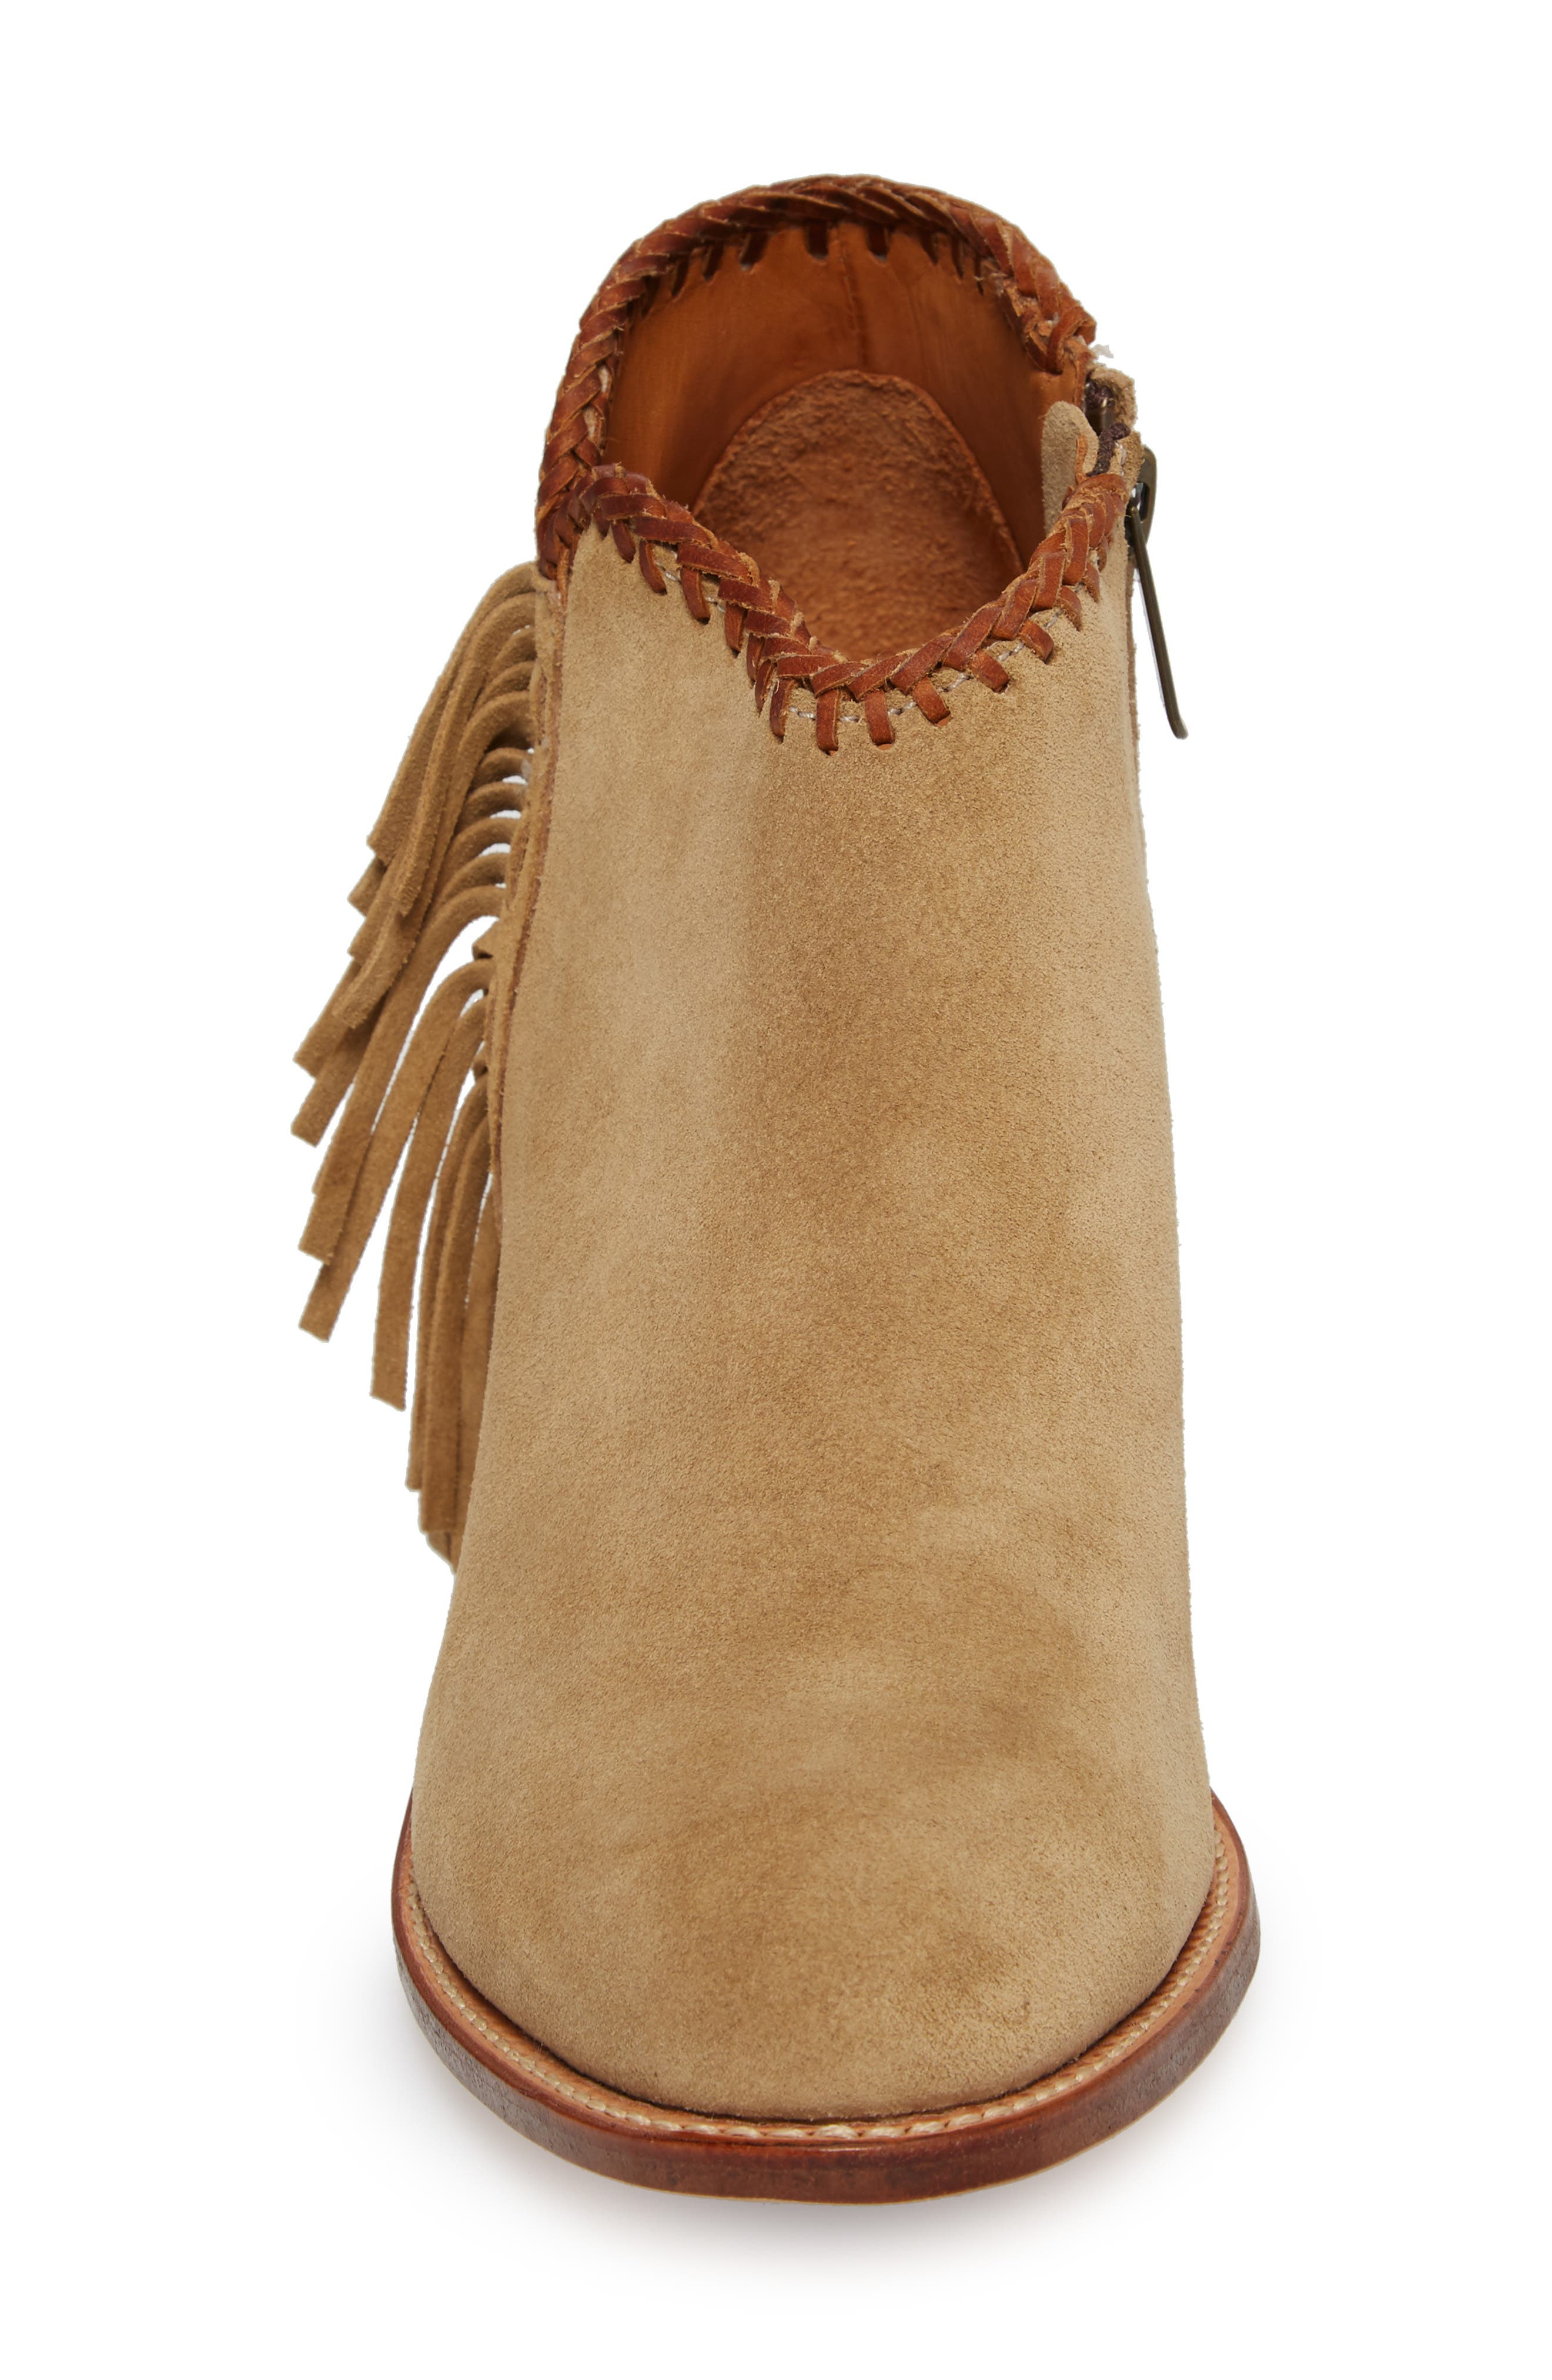 Sonya Fringed Bootie,                             Alternate thumbnail 4, color,                             250